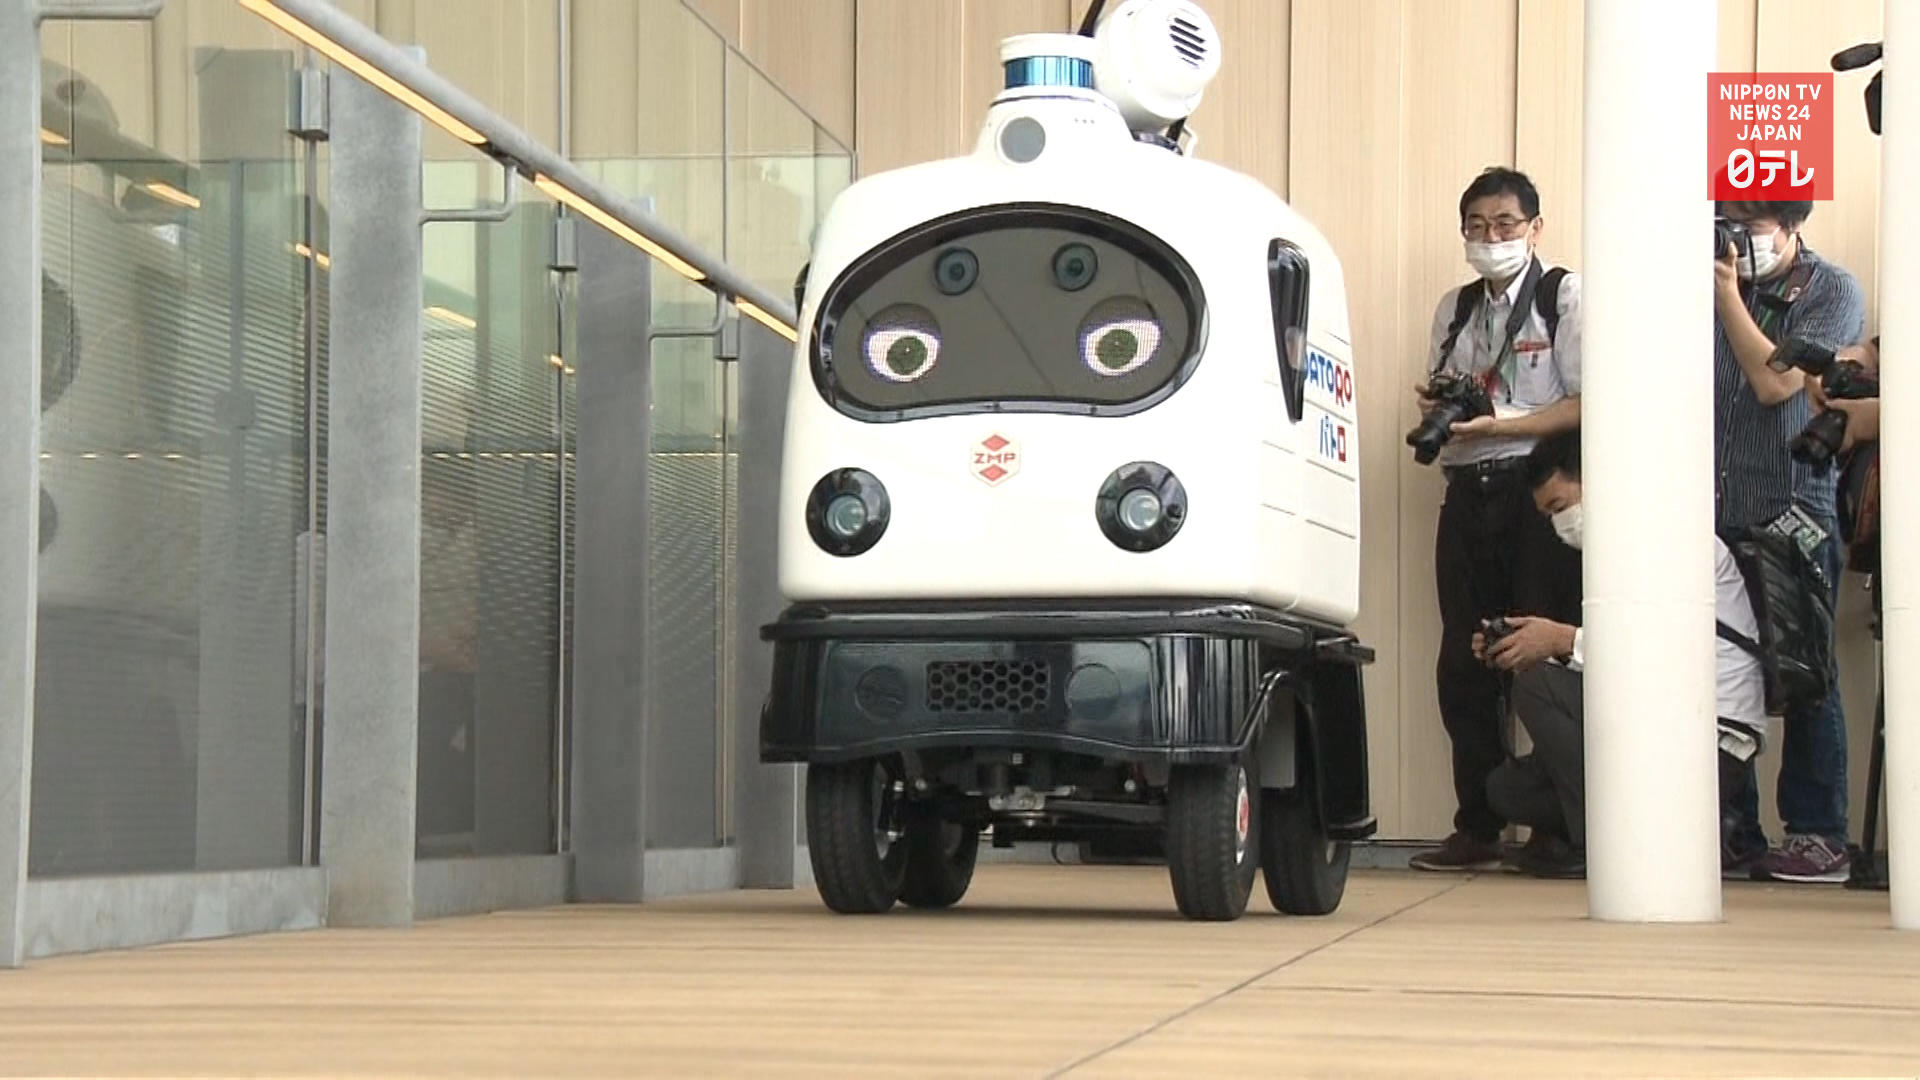 Disinfectant robots tested at Tokyo's new railroad station amid pandemic